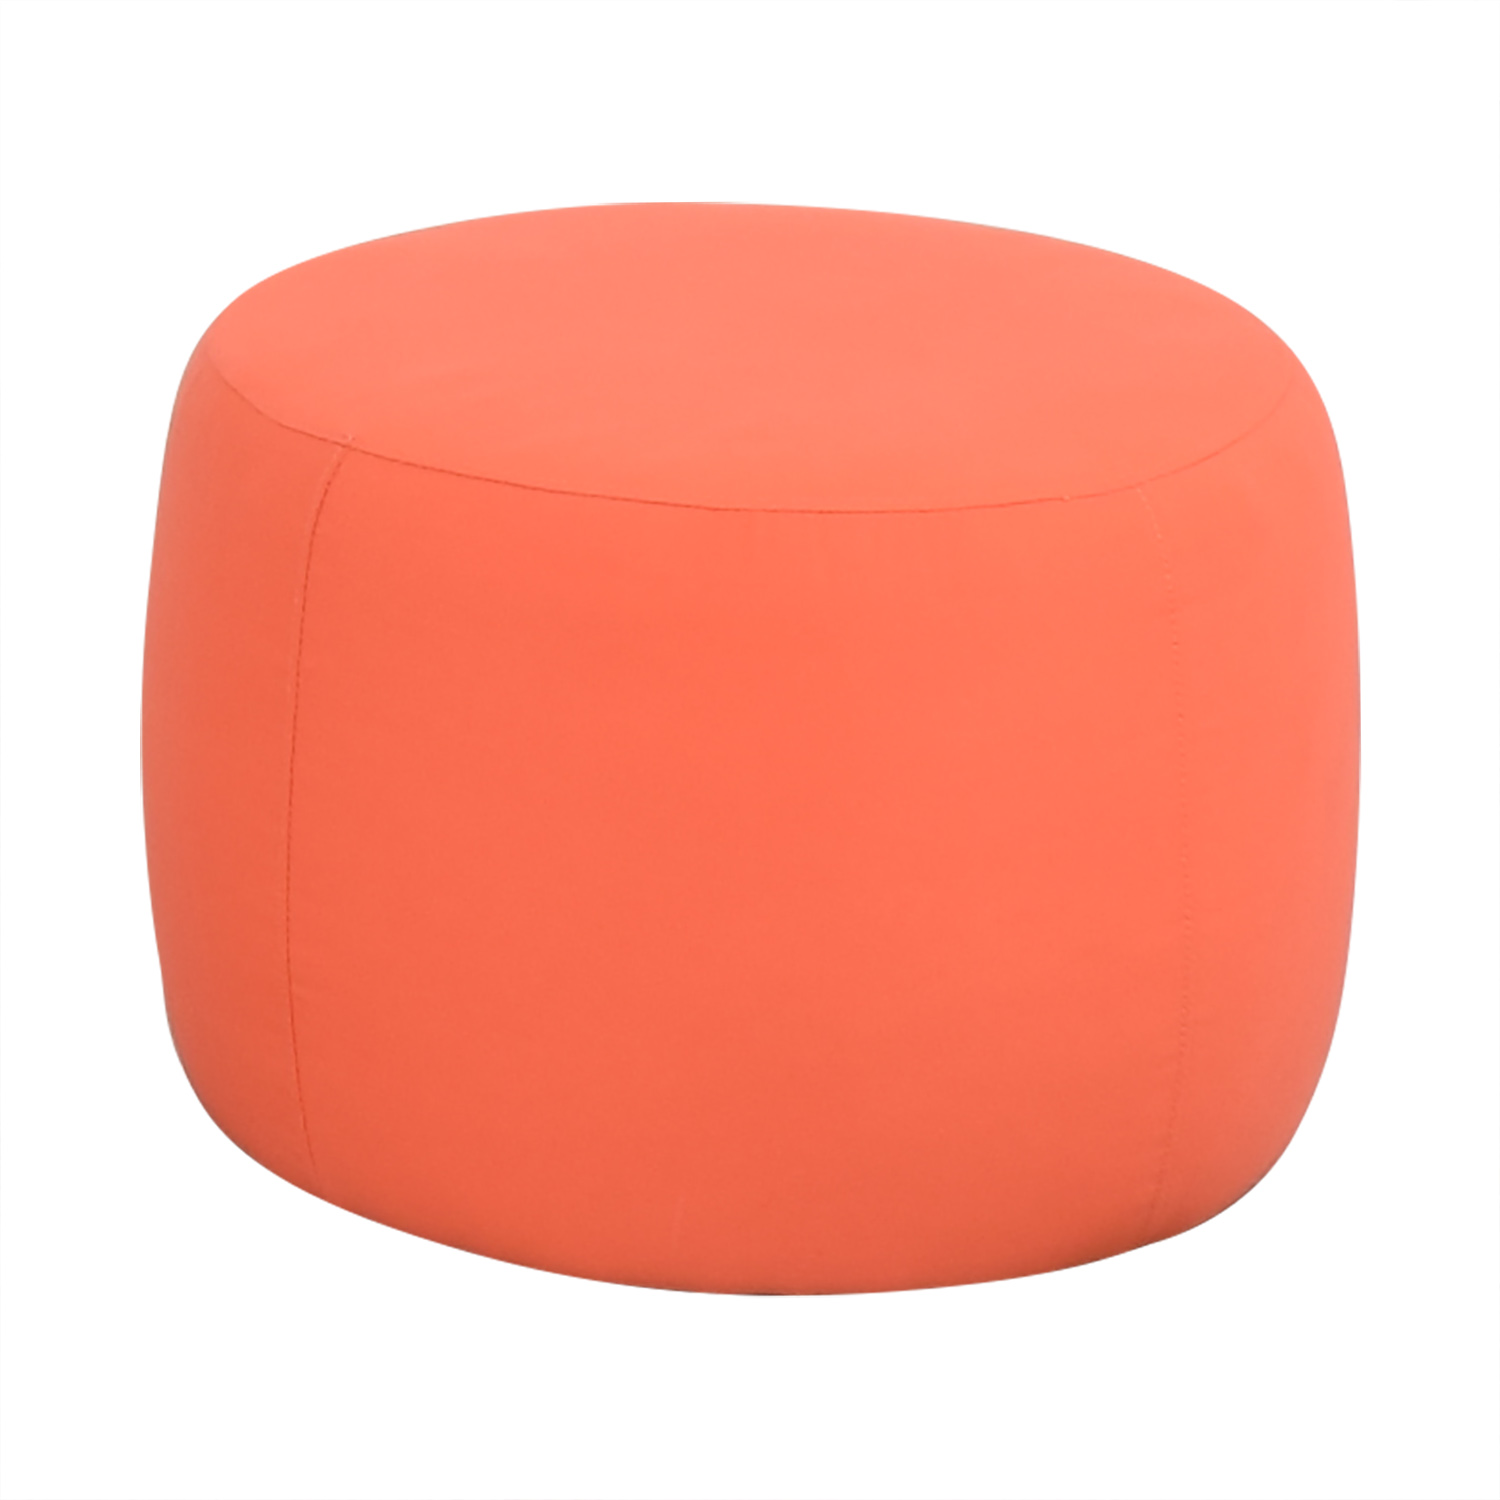 Crate & Barrel Crate & Barrel Pouf Chairs